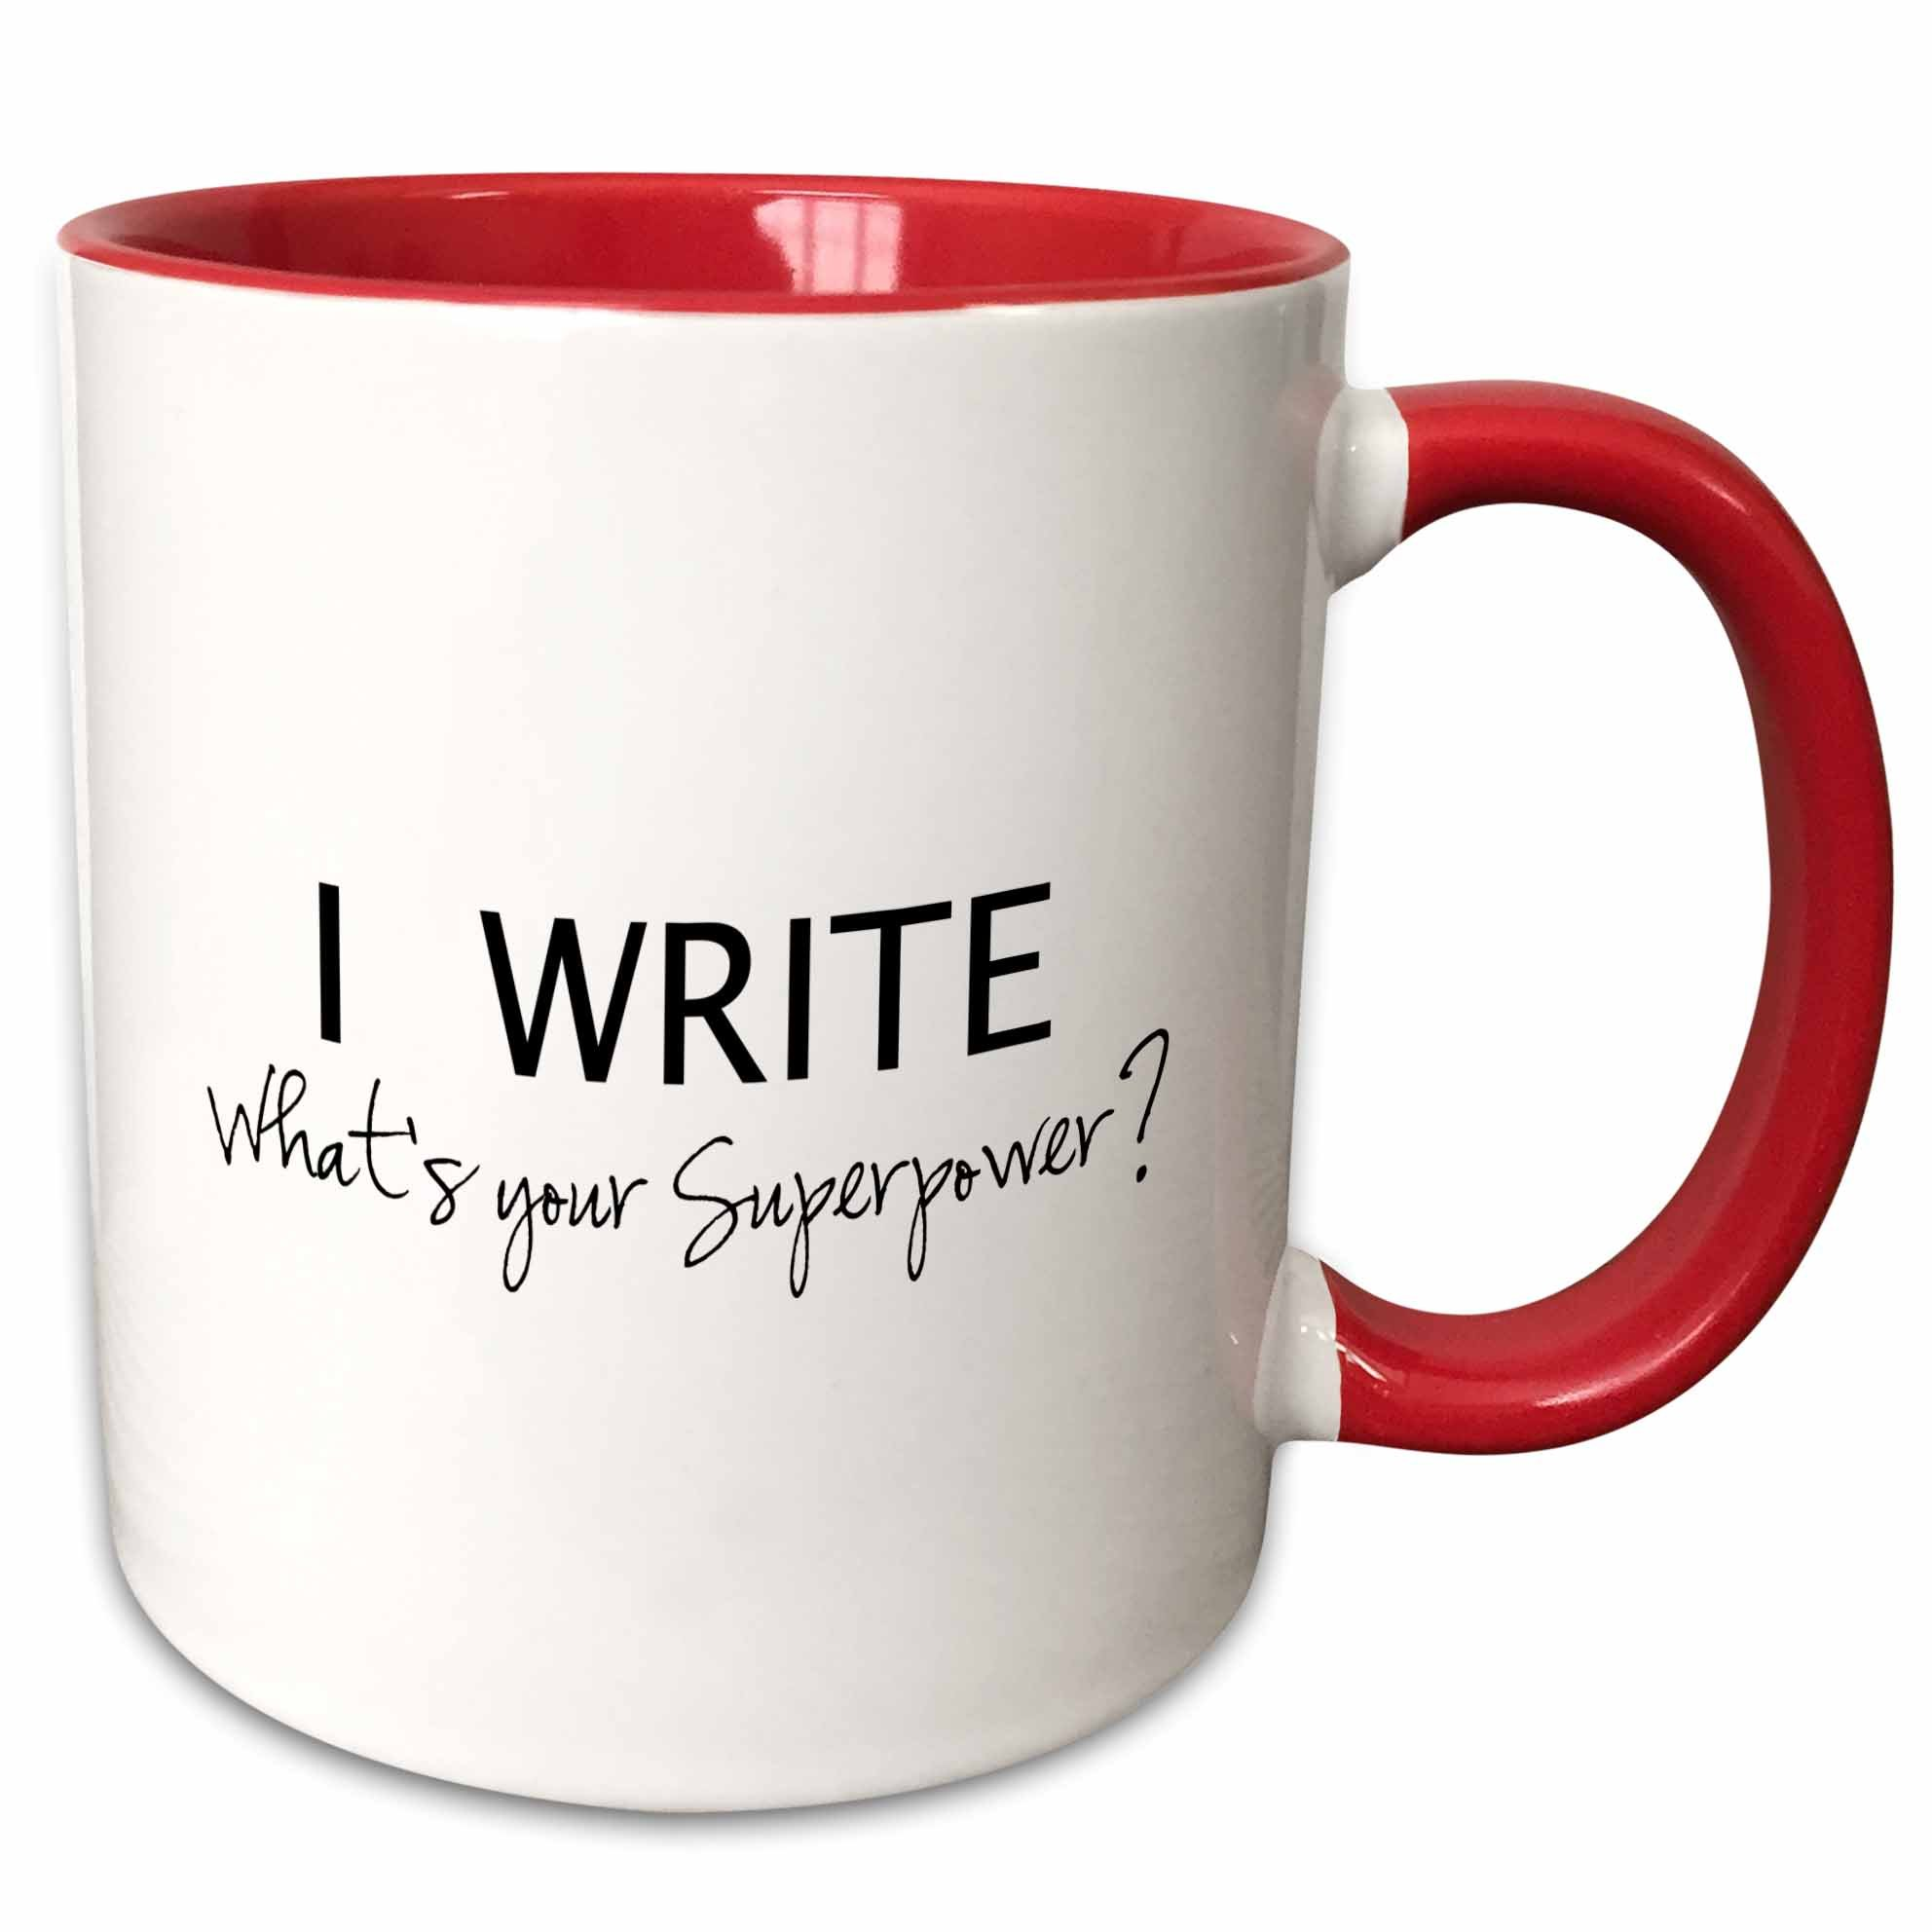 3dRose superpower-fun gift for writers-writing love Two Tone Mug, 11 oz, Red